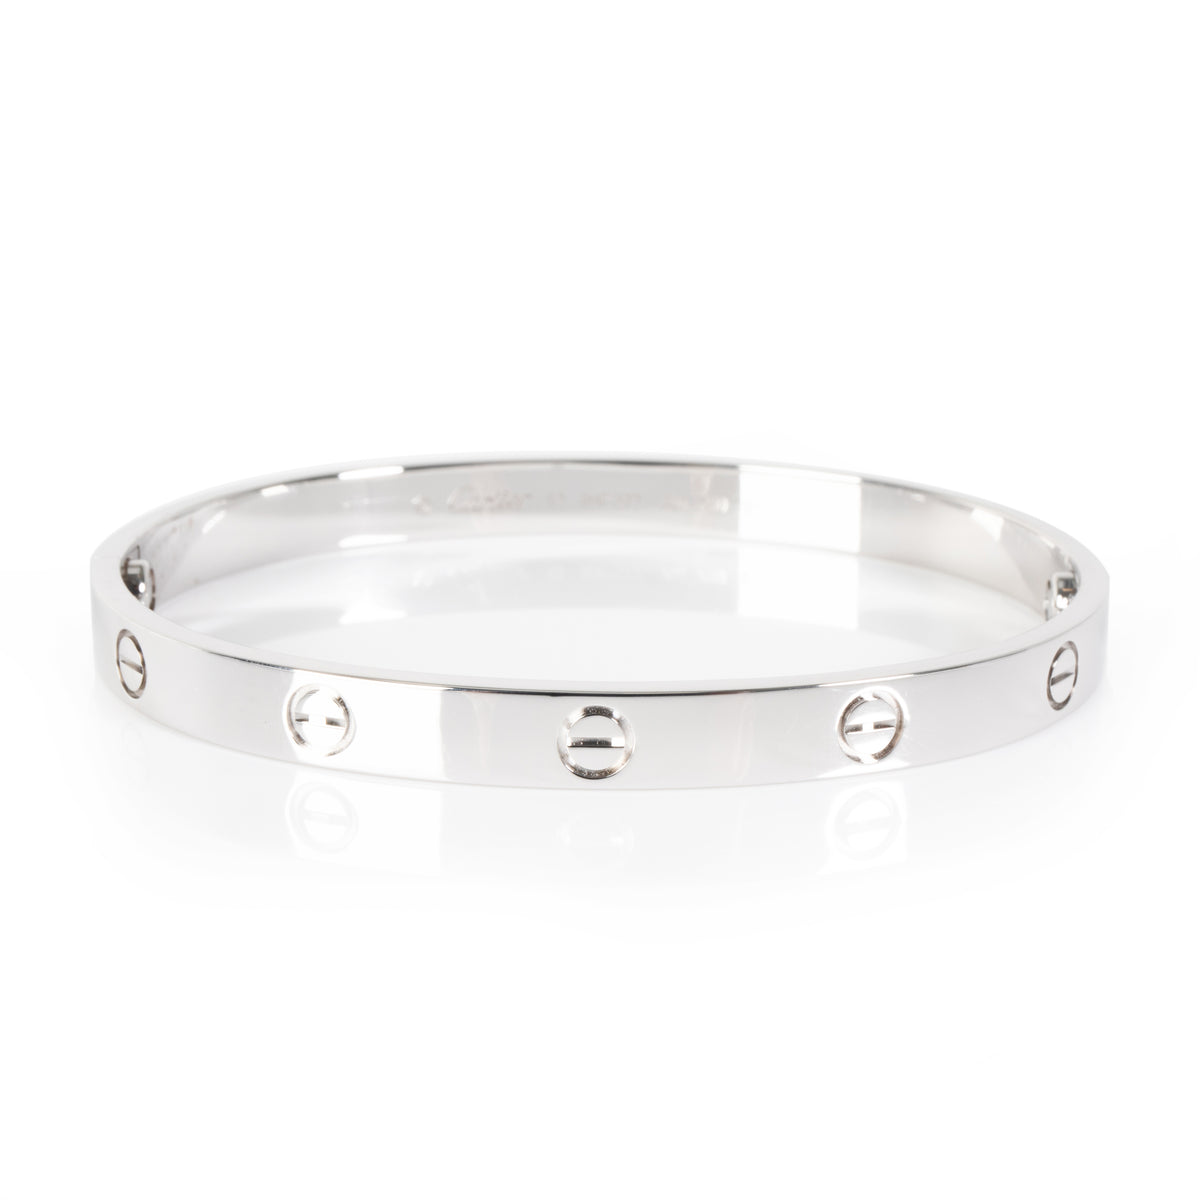 Cartier Love Bangle in 18K White Gold